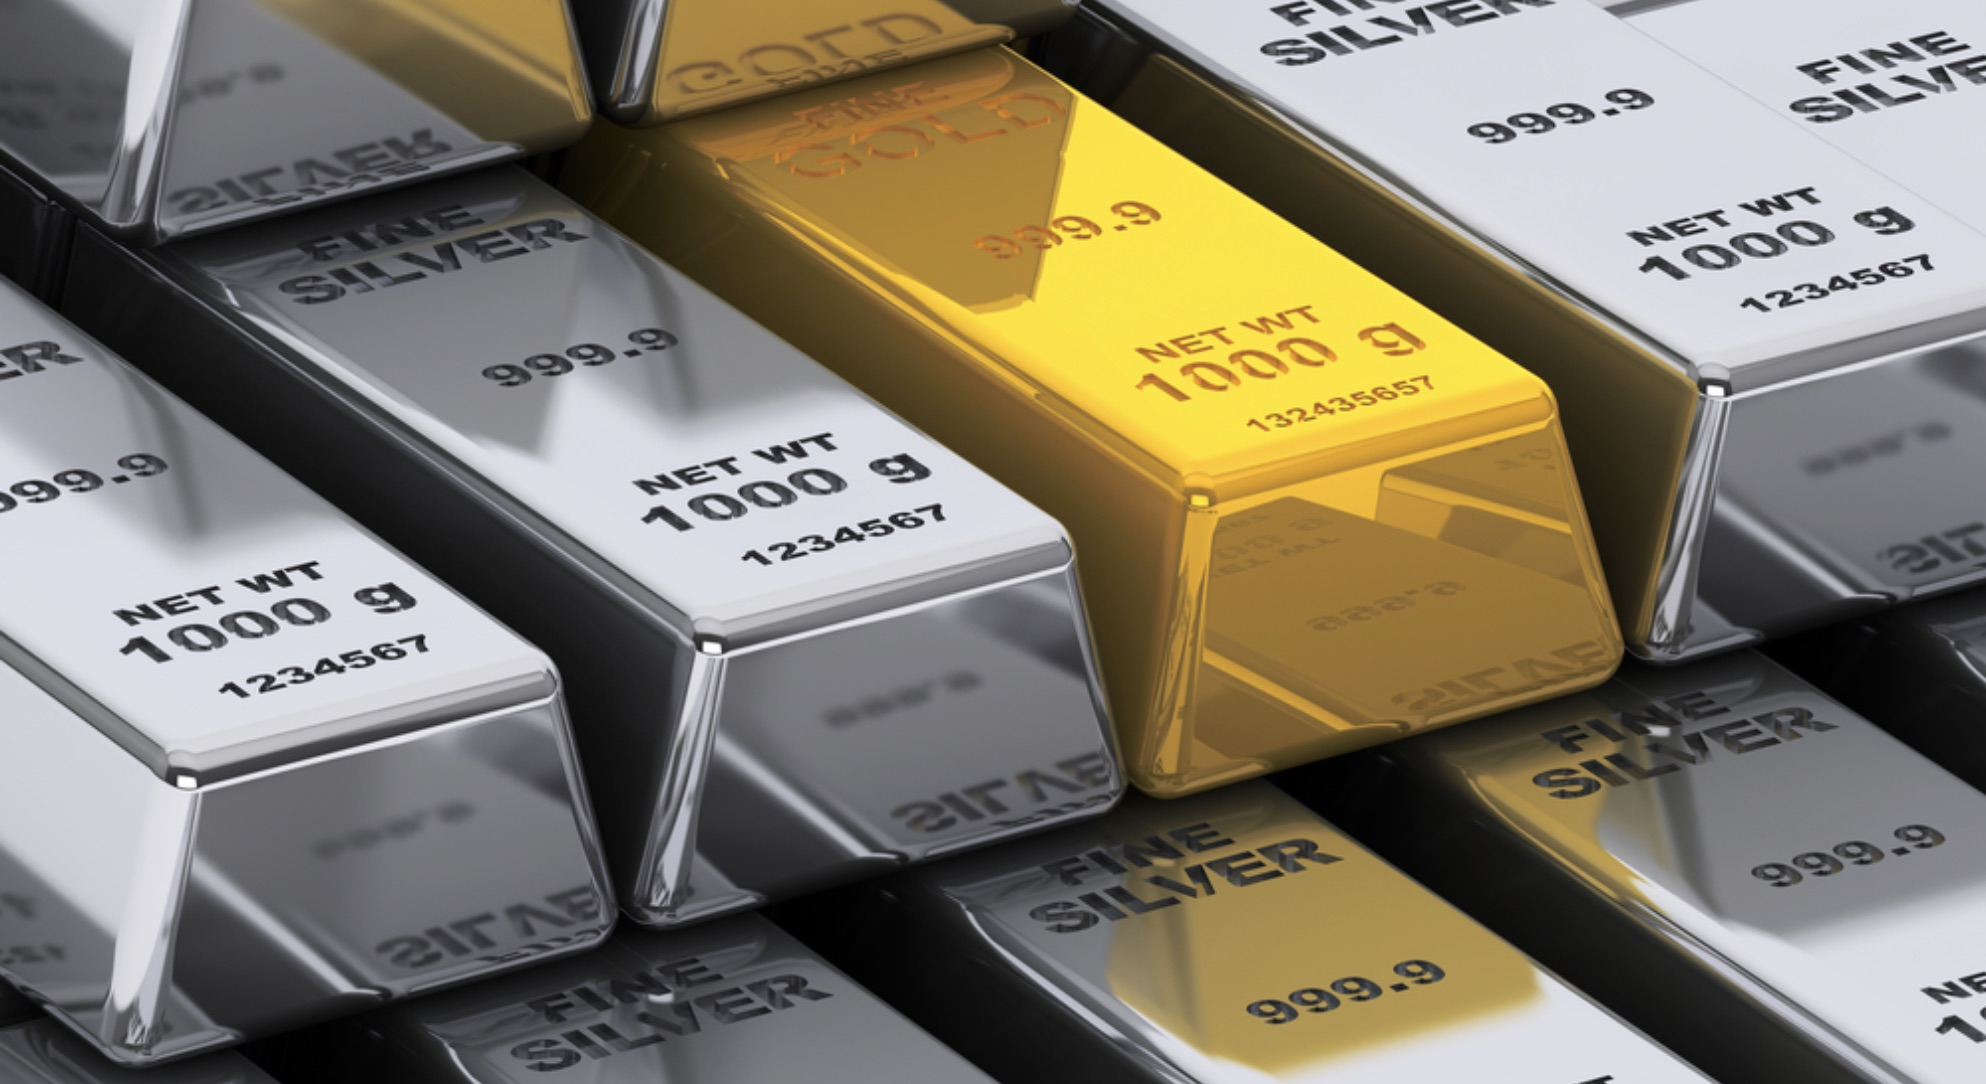 King World News - This Event Is About To Have A Major Impact The Gold & Silver Markets